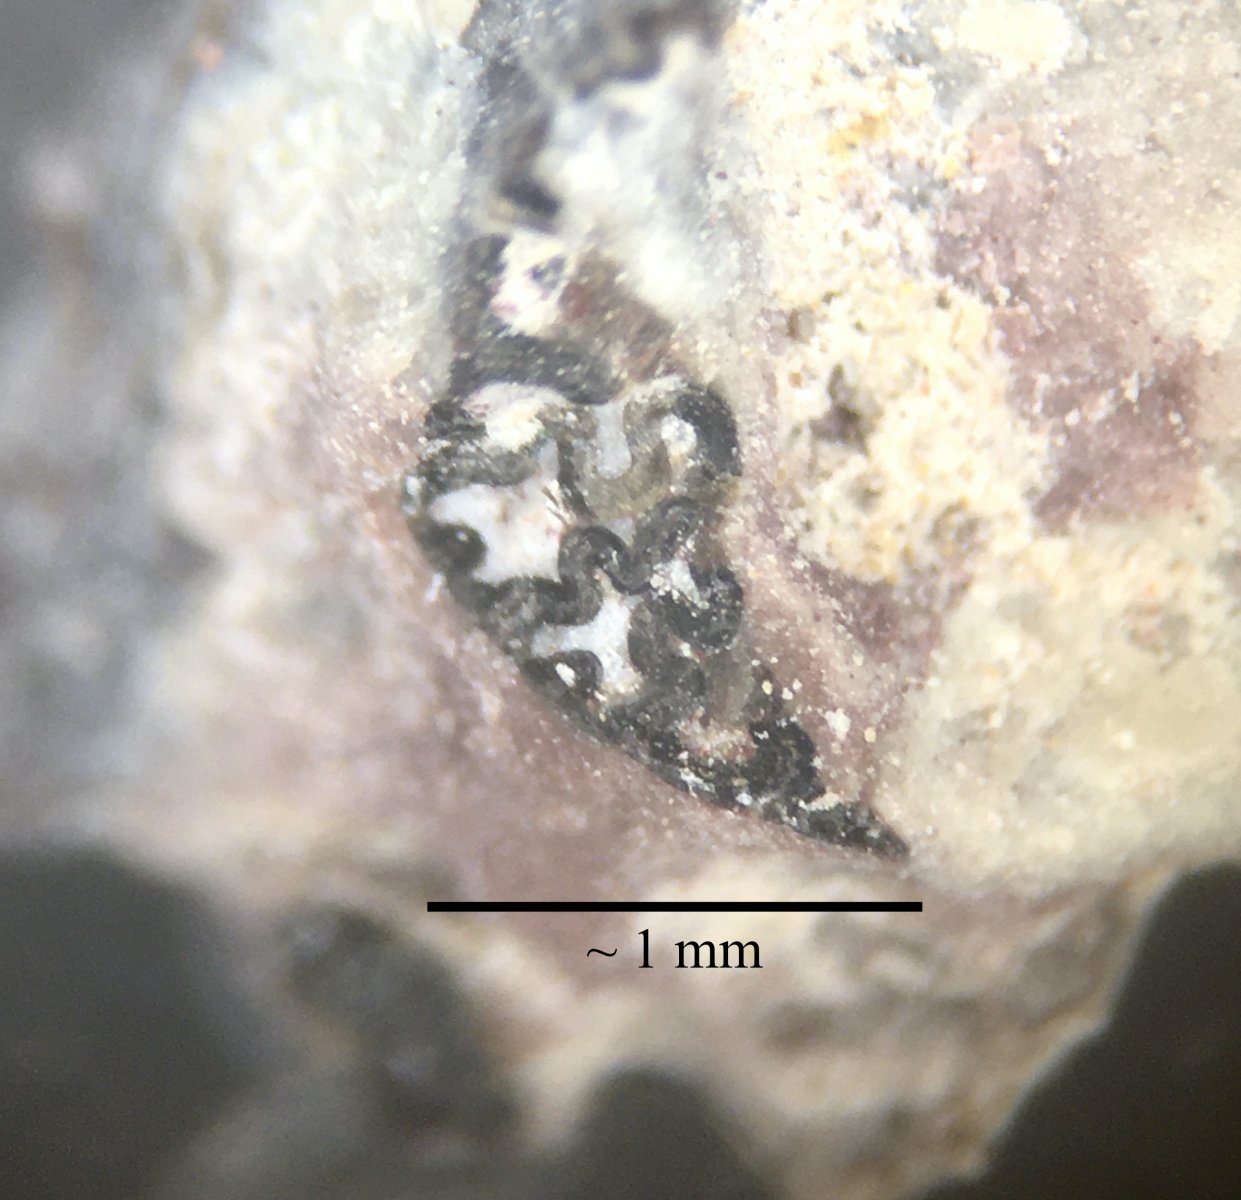 Labyrinthodont tooth structure